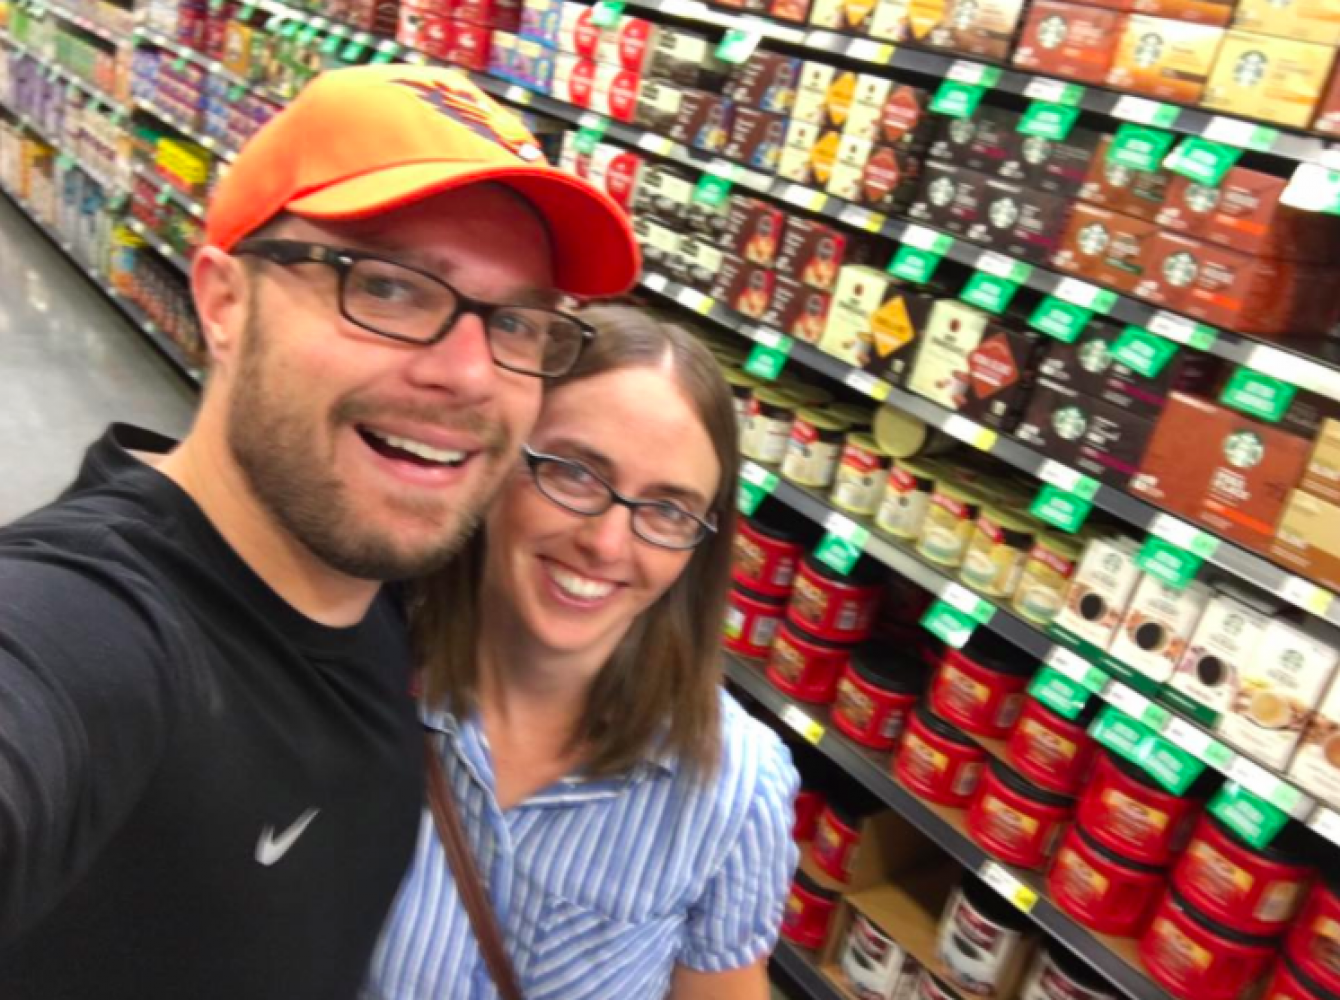 Hot Date At The Grocery Store